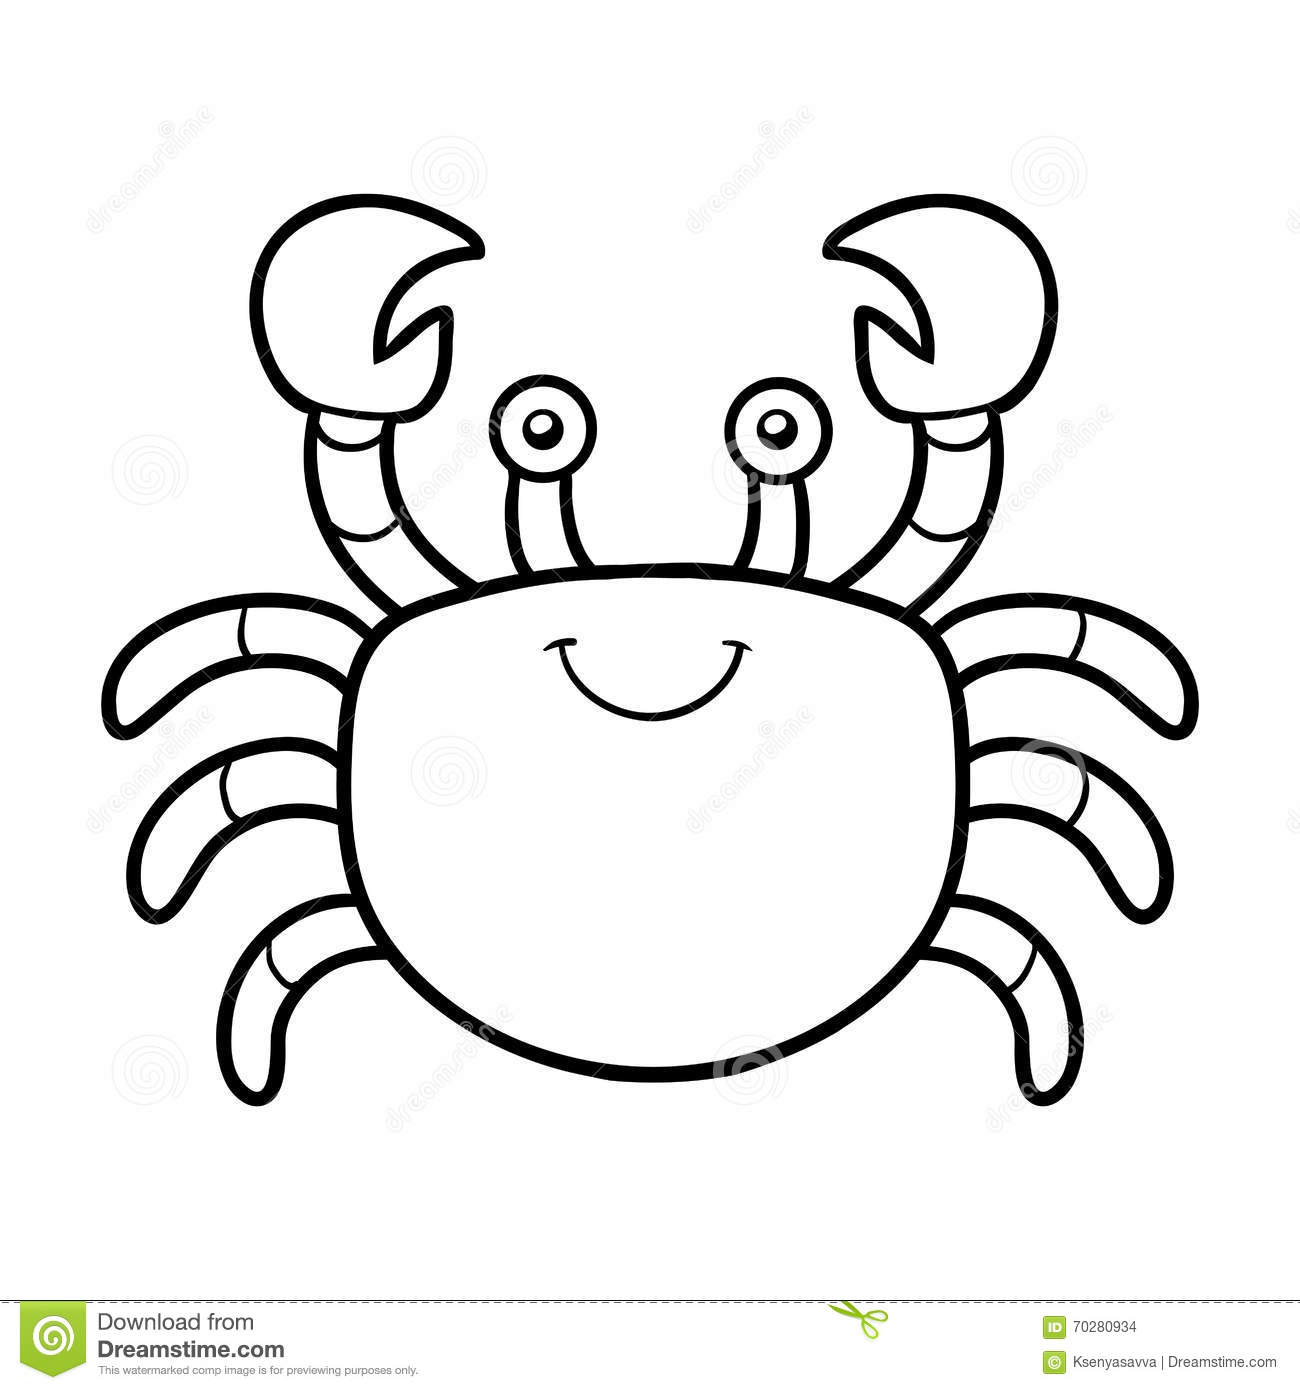 coloring book coloring page crab stock vector image 70280934